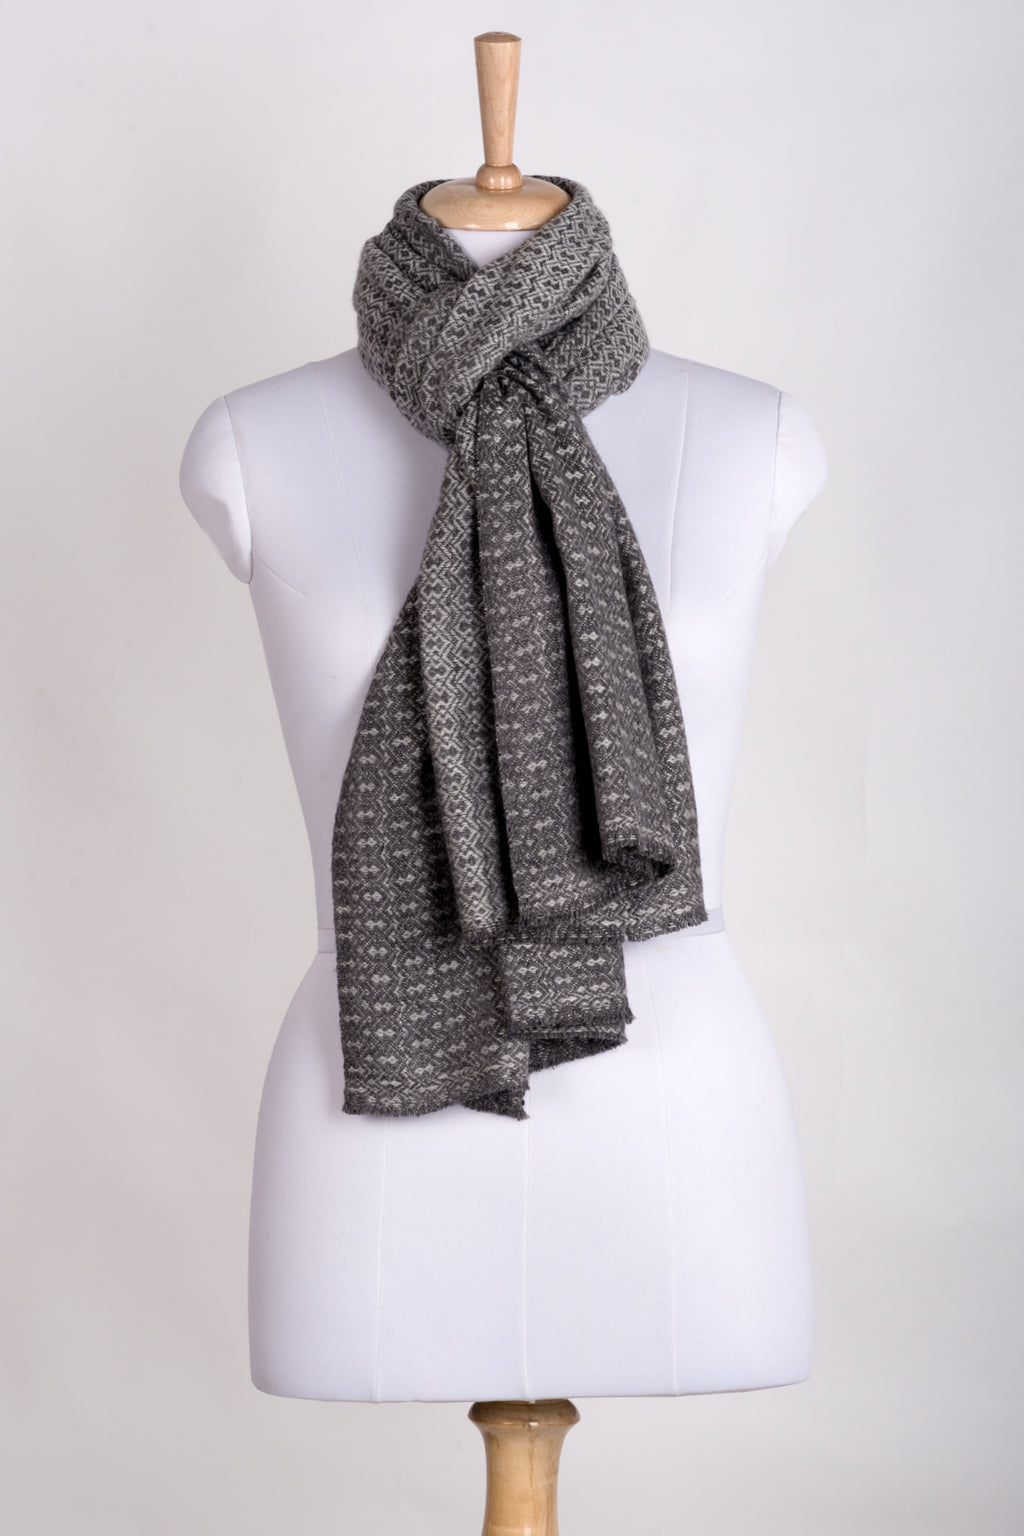 Novelty Diamond Weave Cashmere Wool Scarf - Grey Tonal